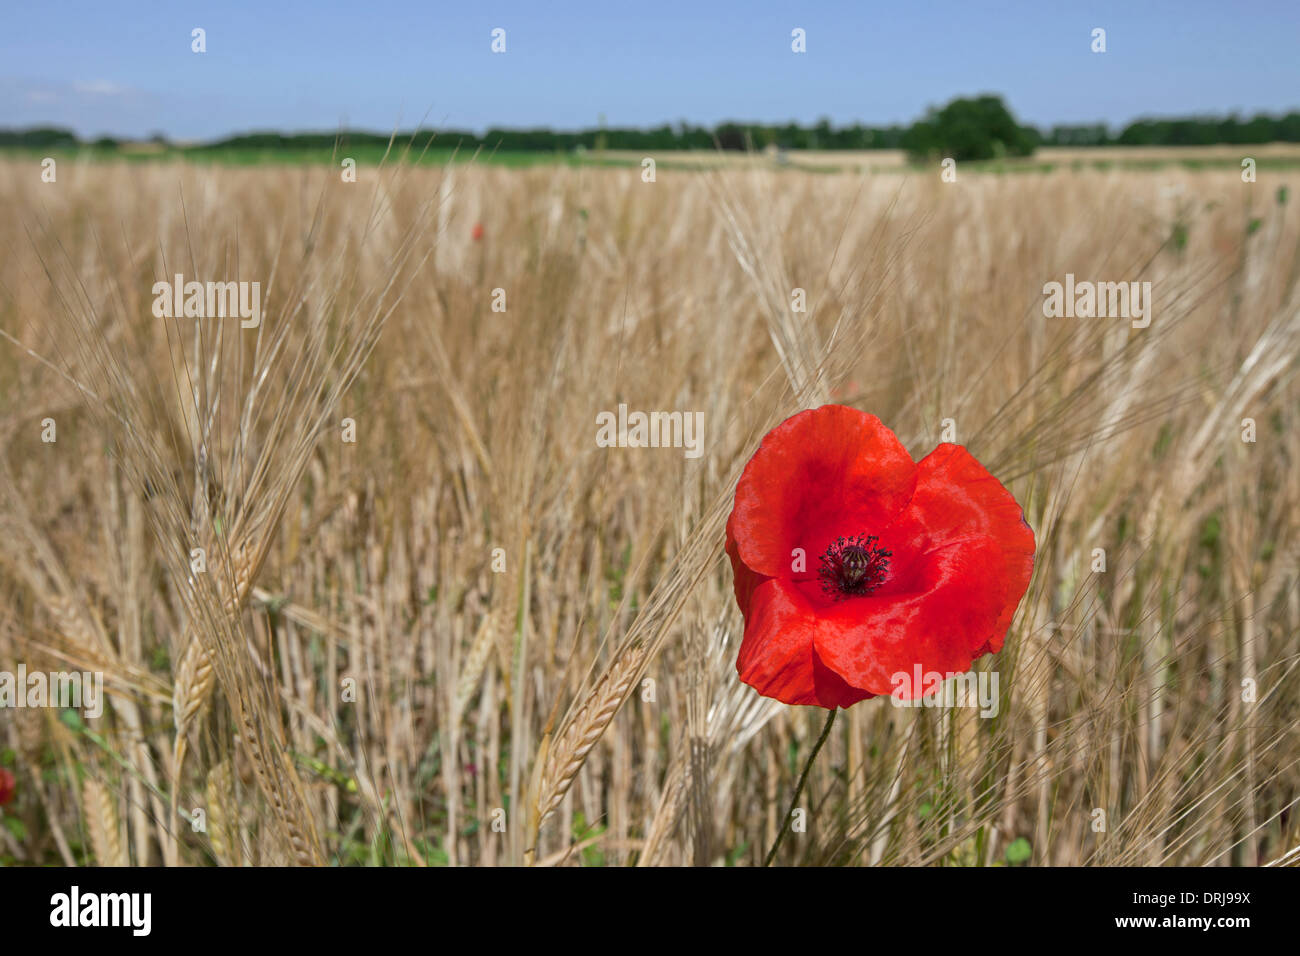 Rural landscape showing red common poppy / field poppies (Papaver rhoeas) flowering in cornfield on farmland in summer - Stock Image